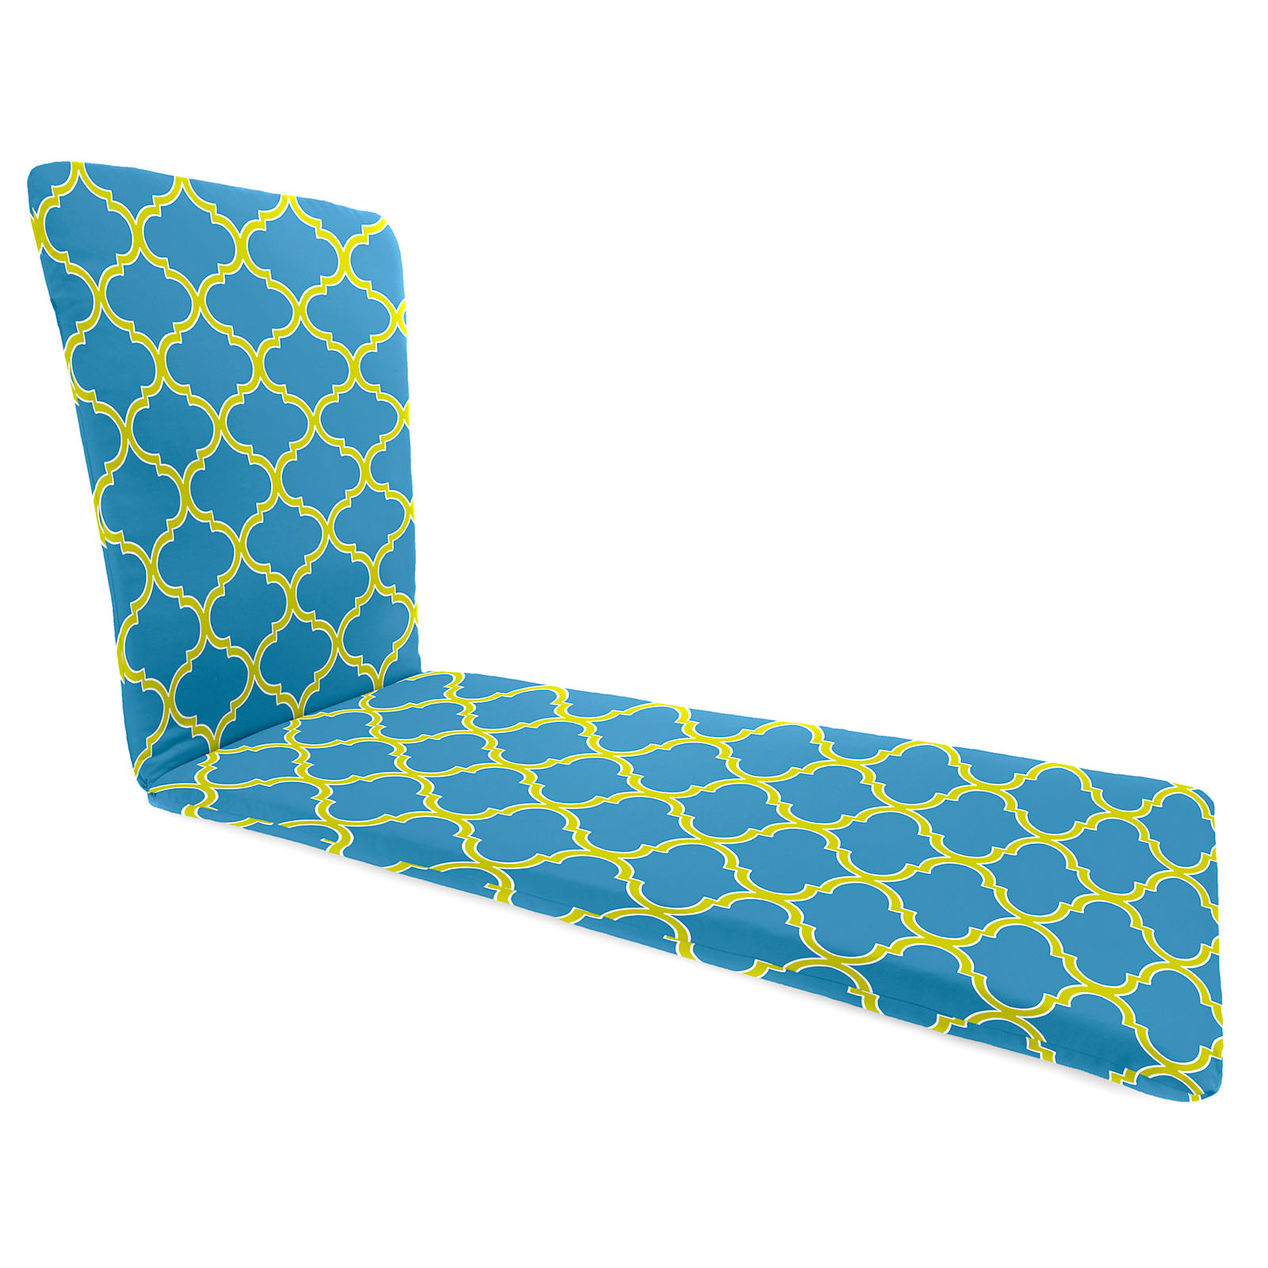 Lounge clipart cushion Irondaz At Cobalt Cobalt Chaise